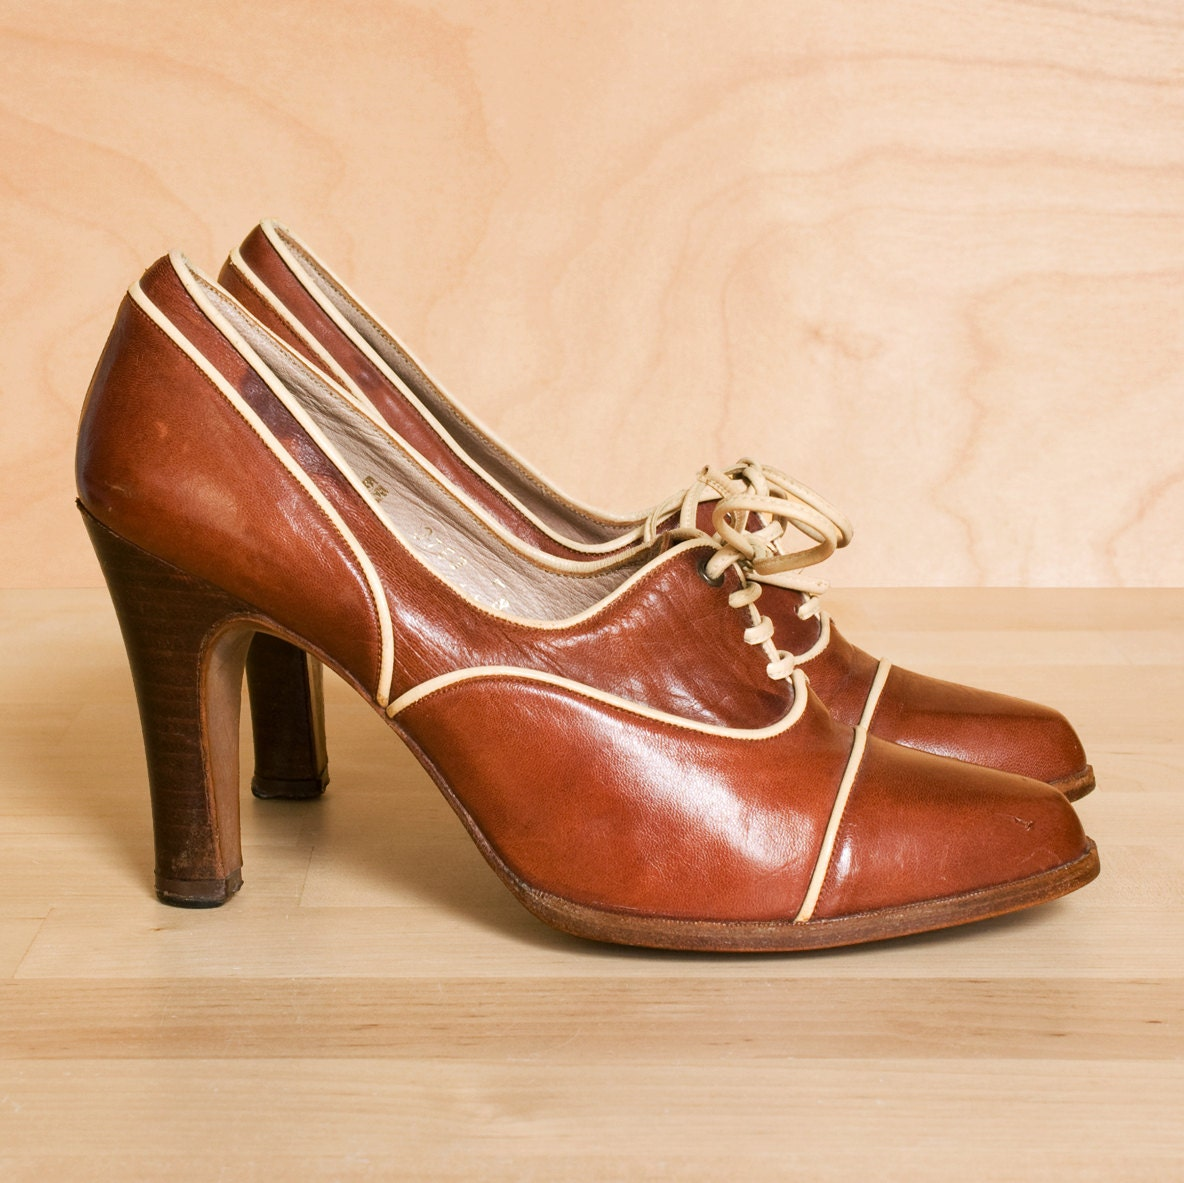 You searched for: cream oxfords! Etsy is the home to thousands of handmade, vintage, and one-of-a-kind products and gifts related to your search. No matter what you're looking for or where you are in the world, our global marketplace of sellers can help you find unique and affordable options. Let's get started!